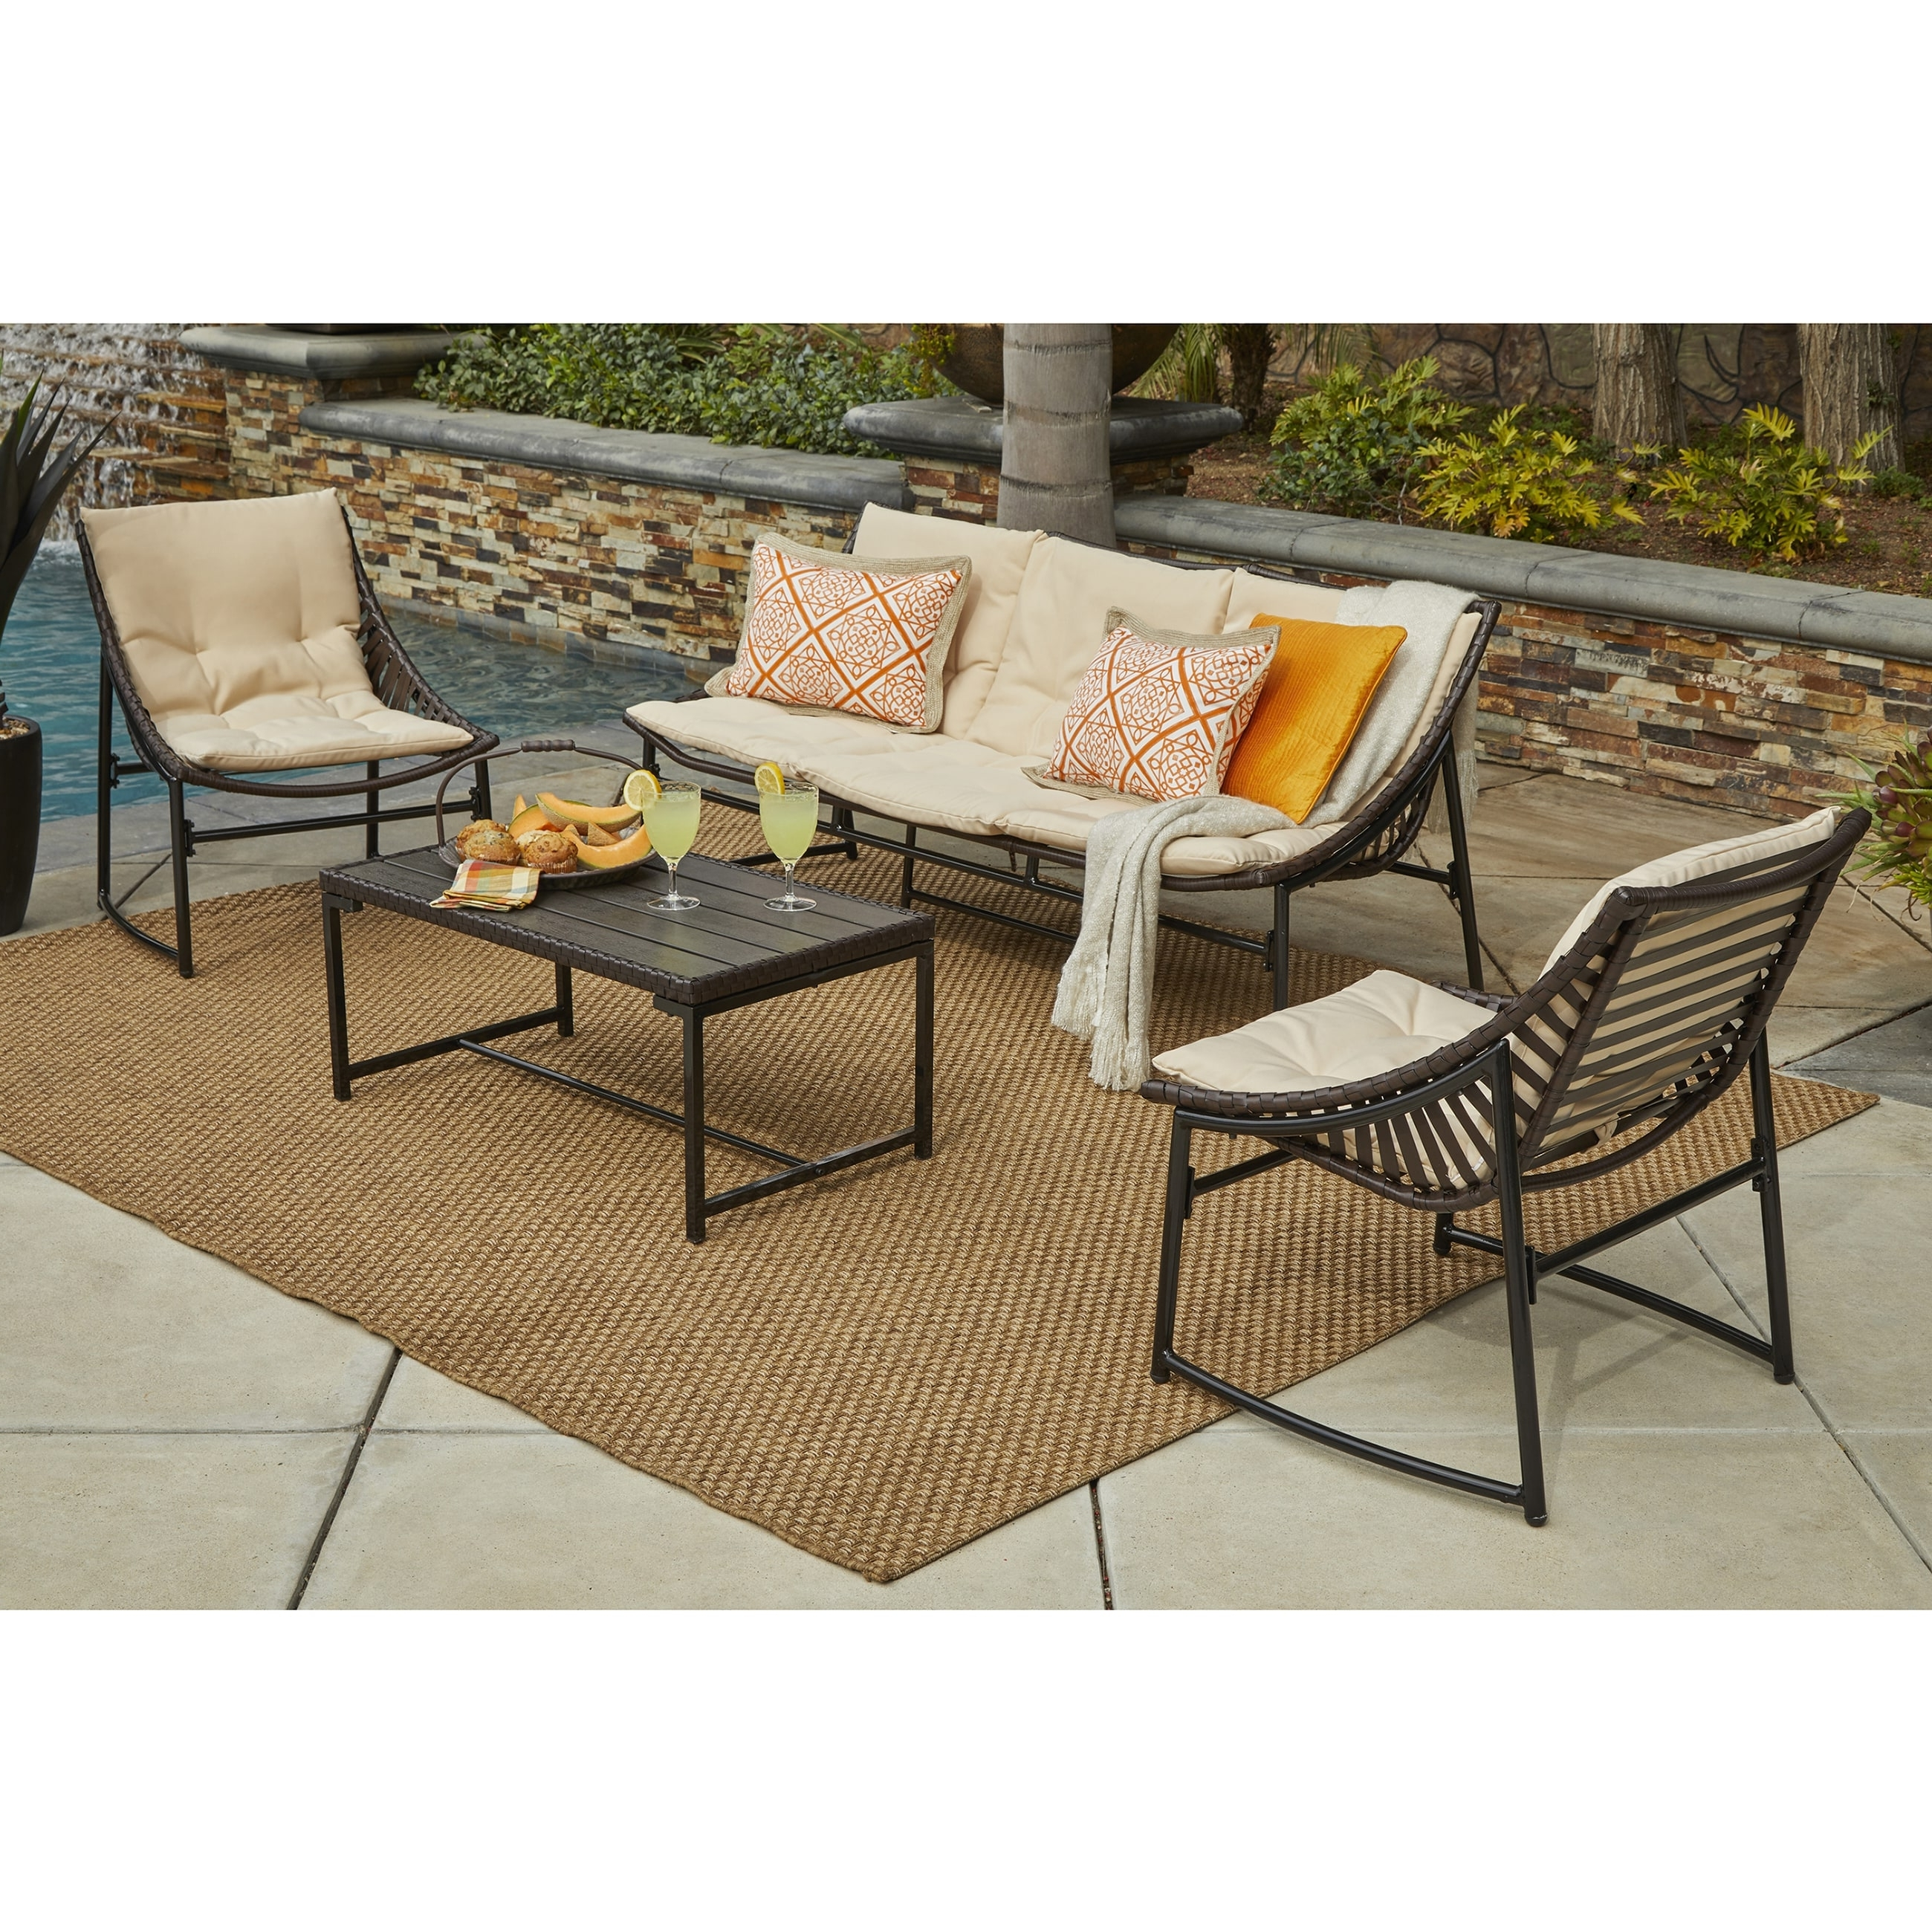 Shop Handy Living Nico 4 Piece Indoor/outdoor Sling Conversation Set Pertaining To Most Up To Date Sling Patio Conversation Sets (View 14 of 15)